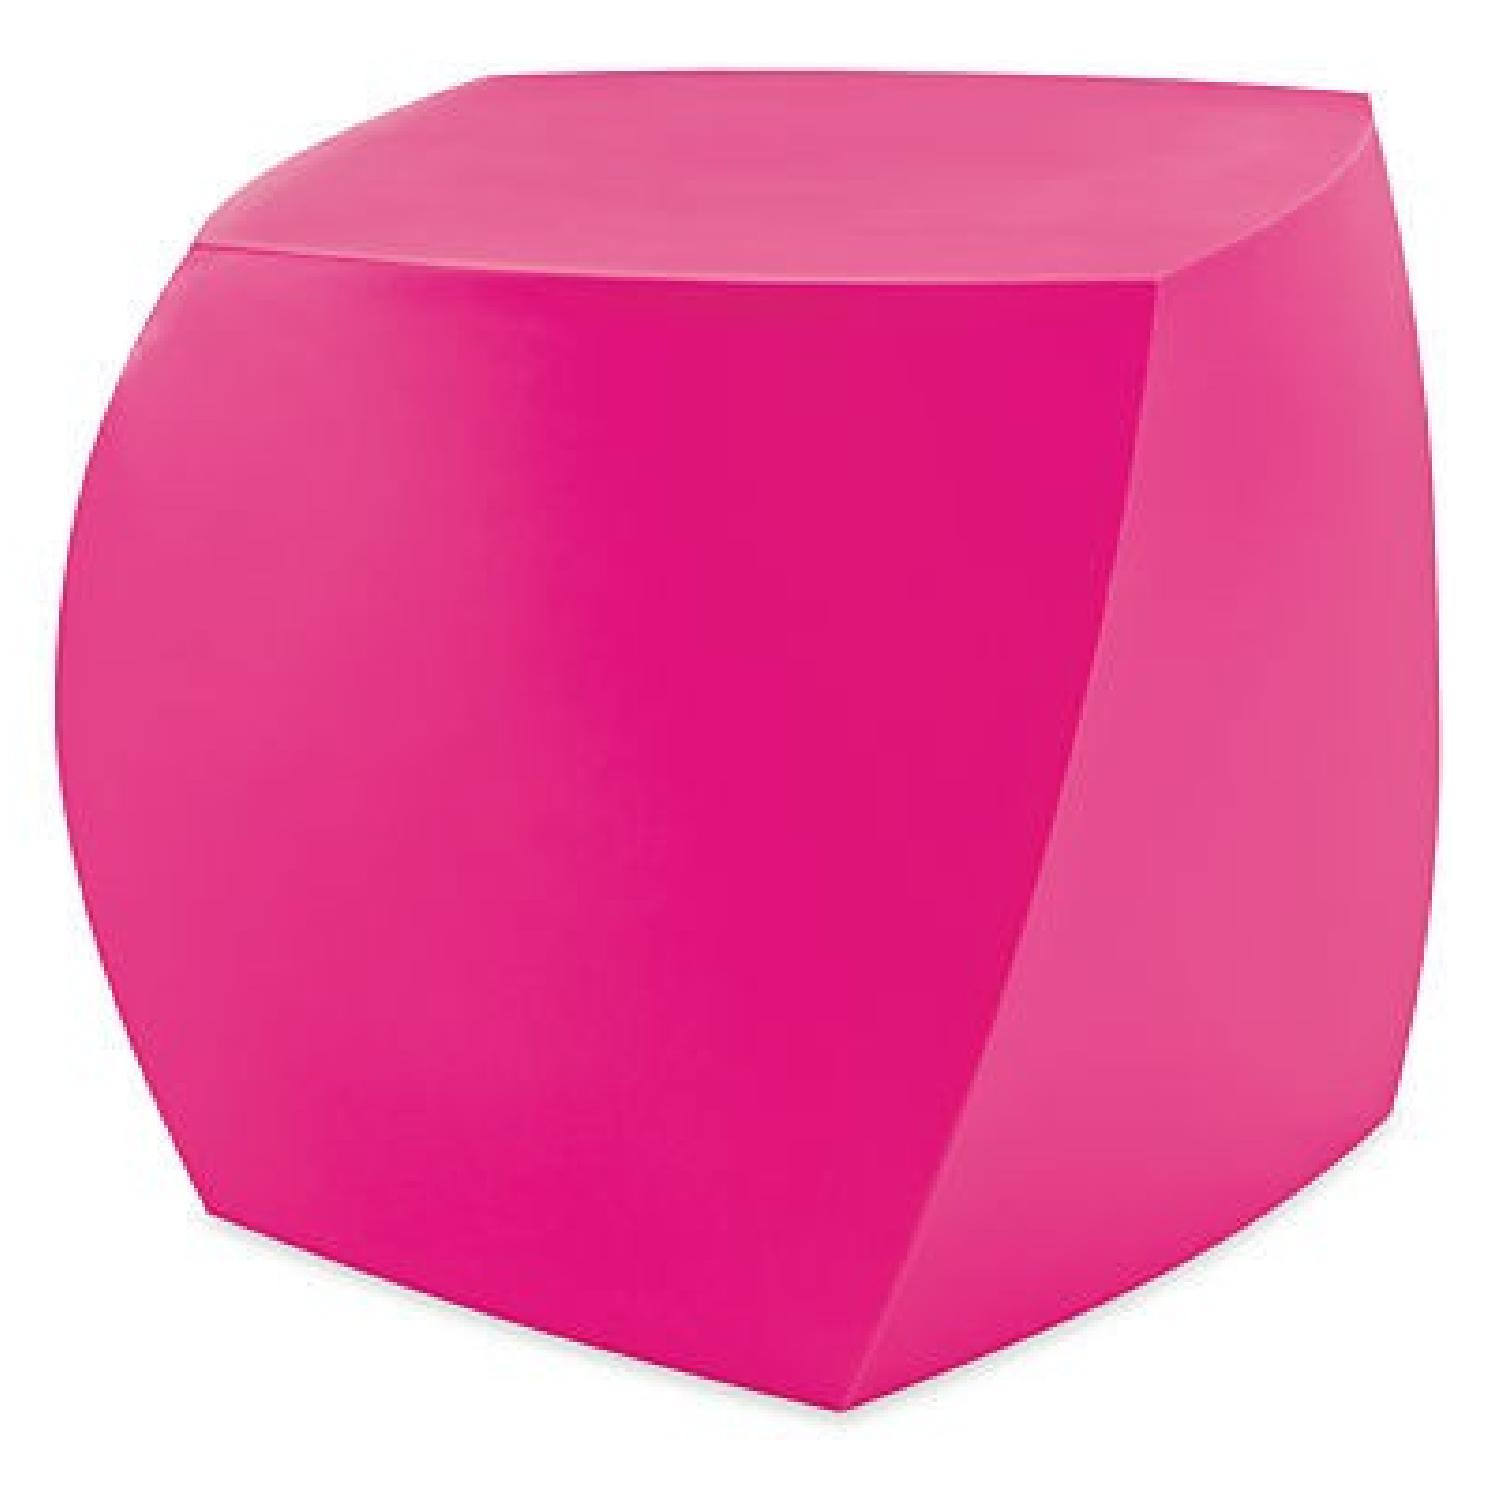 Heller Inc Bright Pink Frank Gehry Cube/Stool/Table